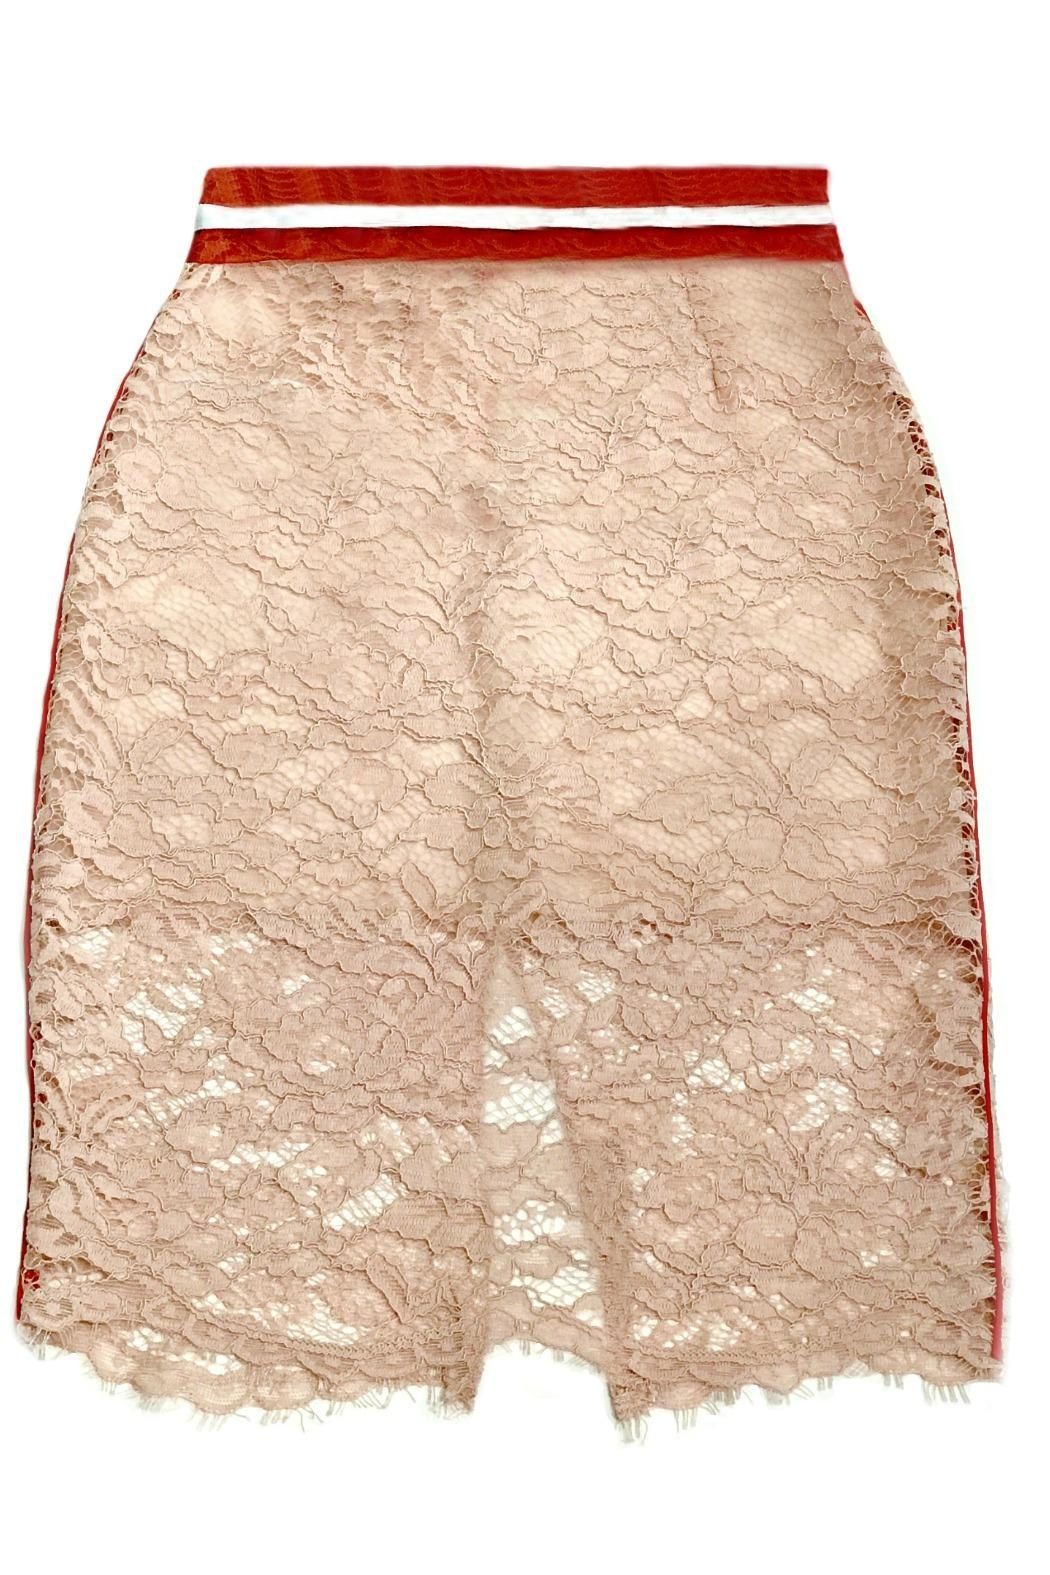 Maryley Pink Lace Skirt - Front Full Image